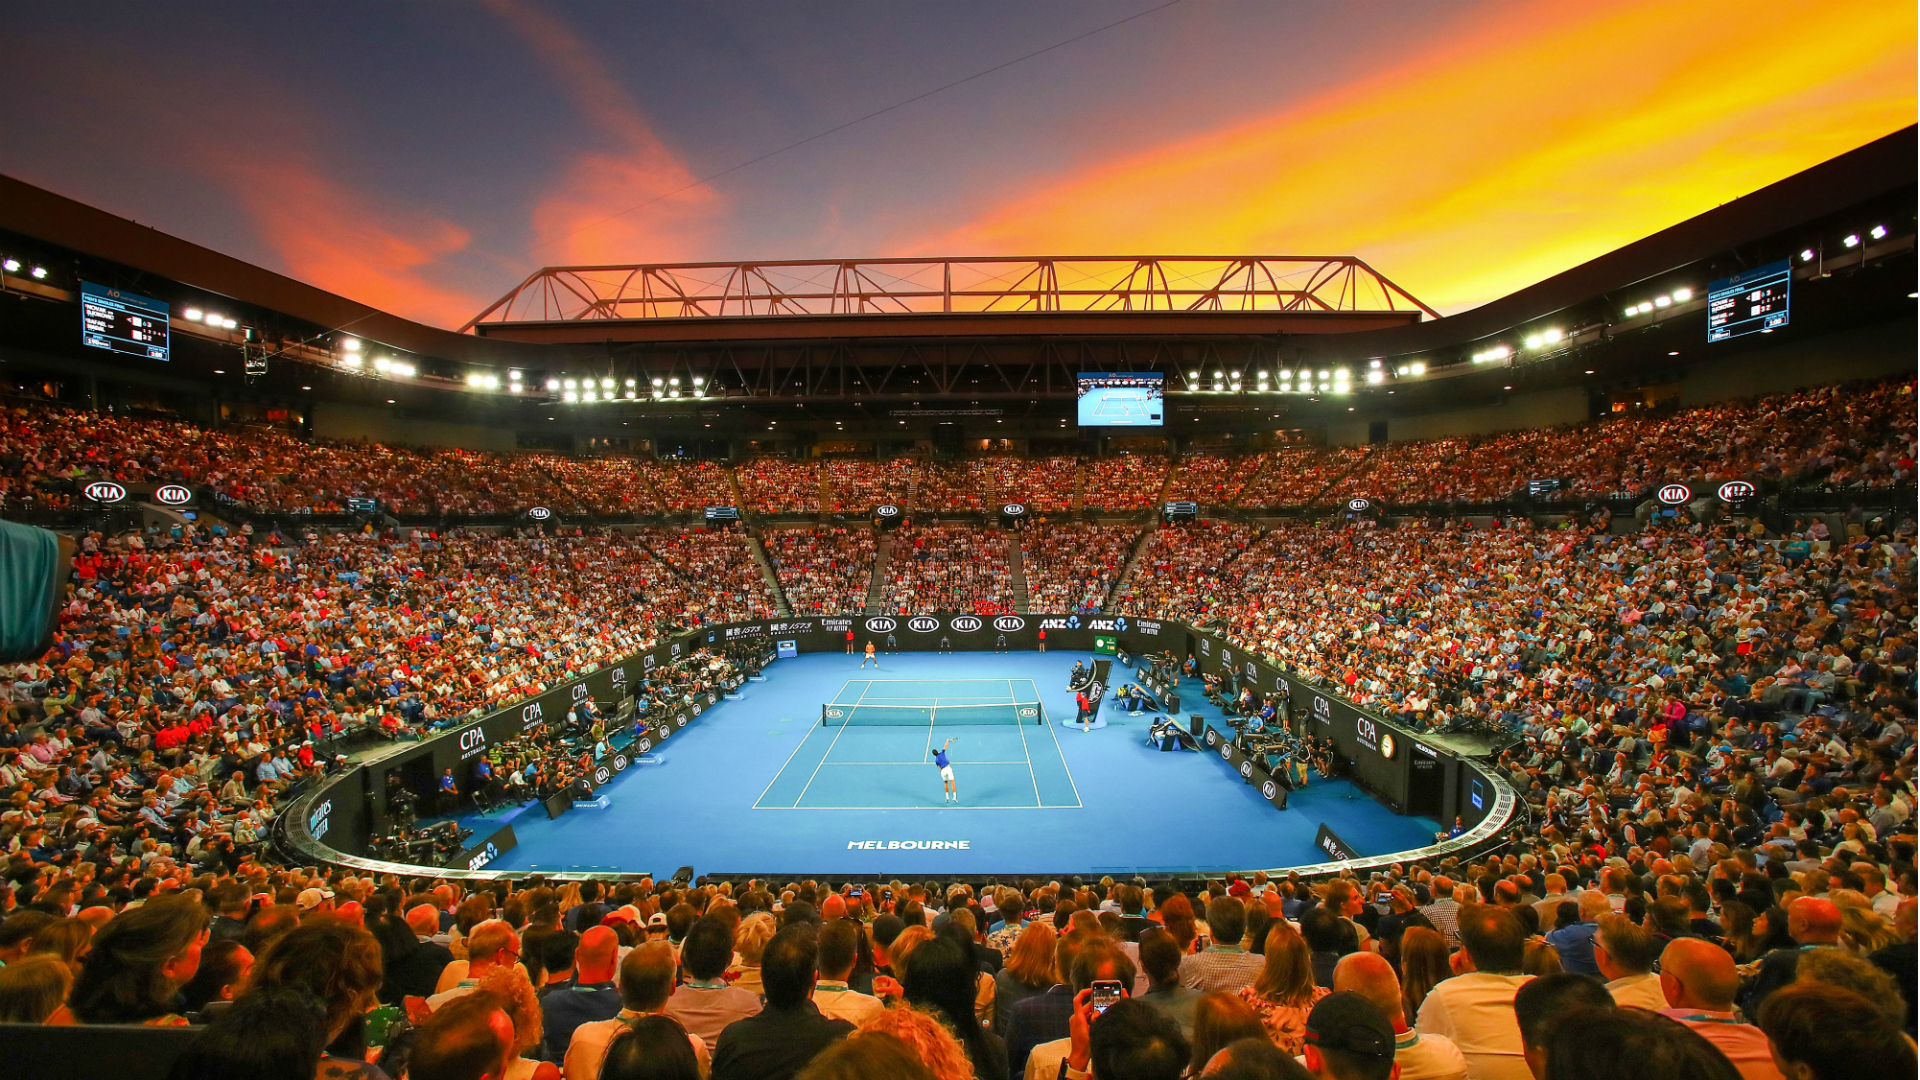 Tiley confident Australian Open plans close to being finalised amid cancellation reports